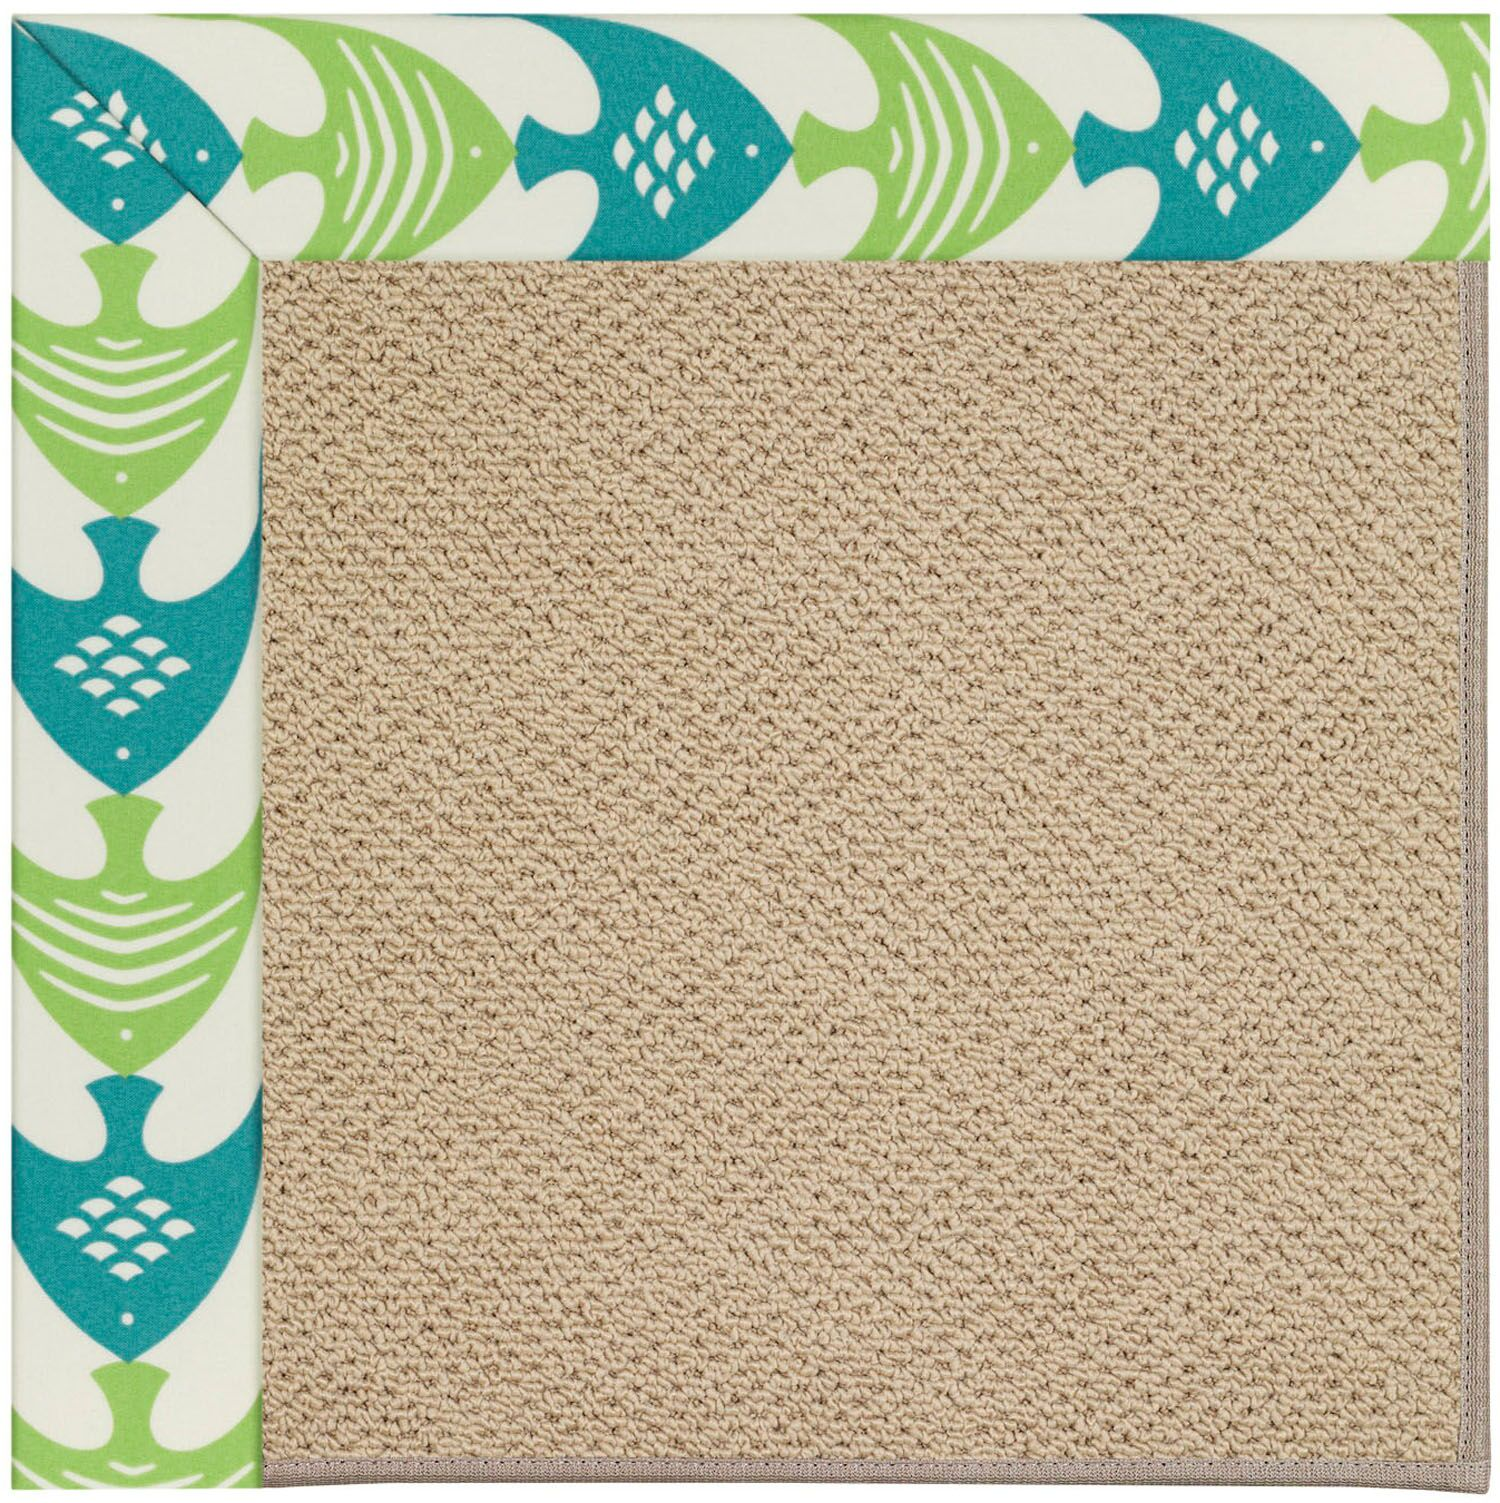 Lisle Machine Tufted Angel Fish Green/Brown Indoor/Outdoor Area Rug Rug Size: Rectangle 8' x 10'